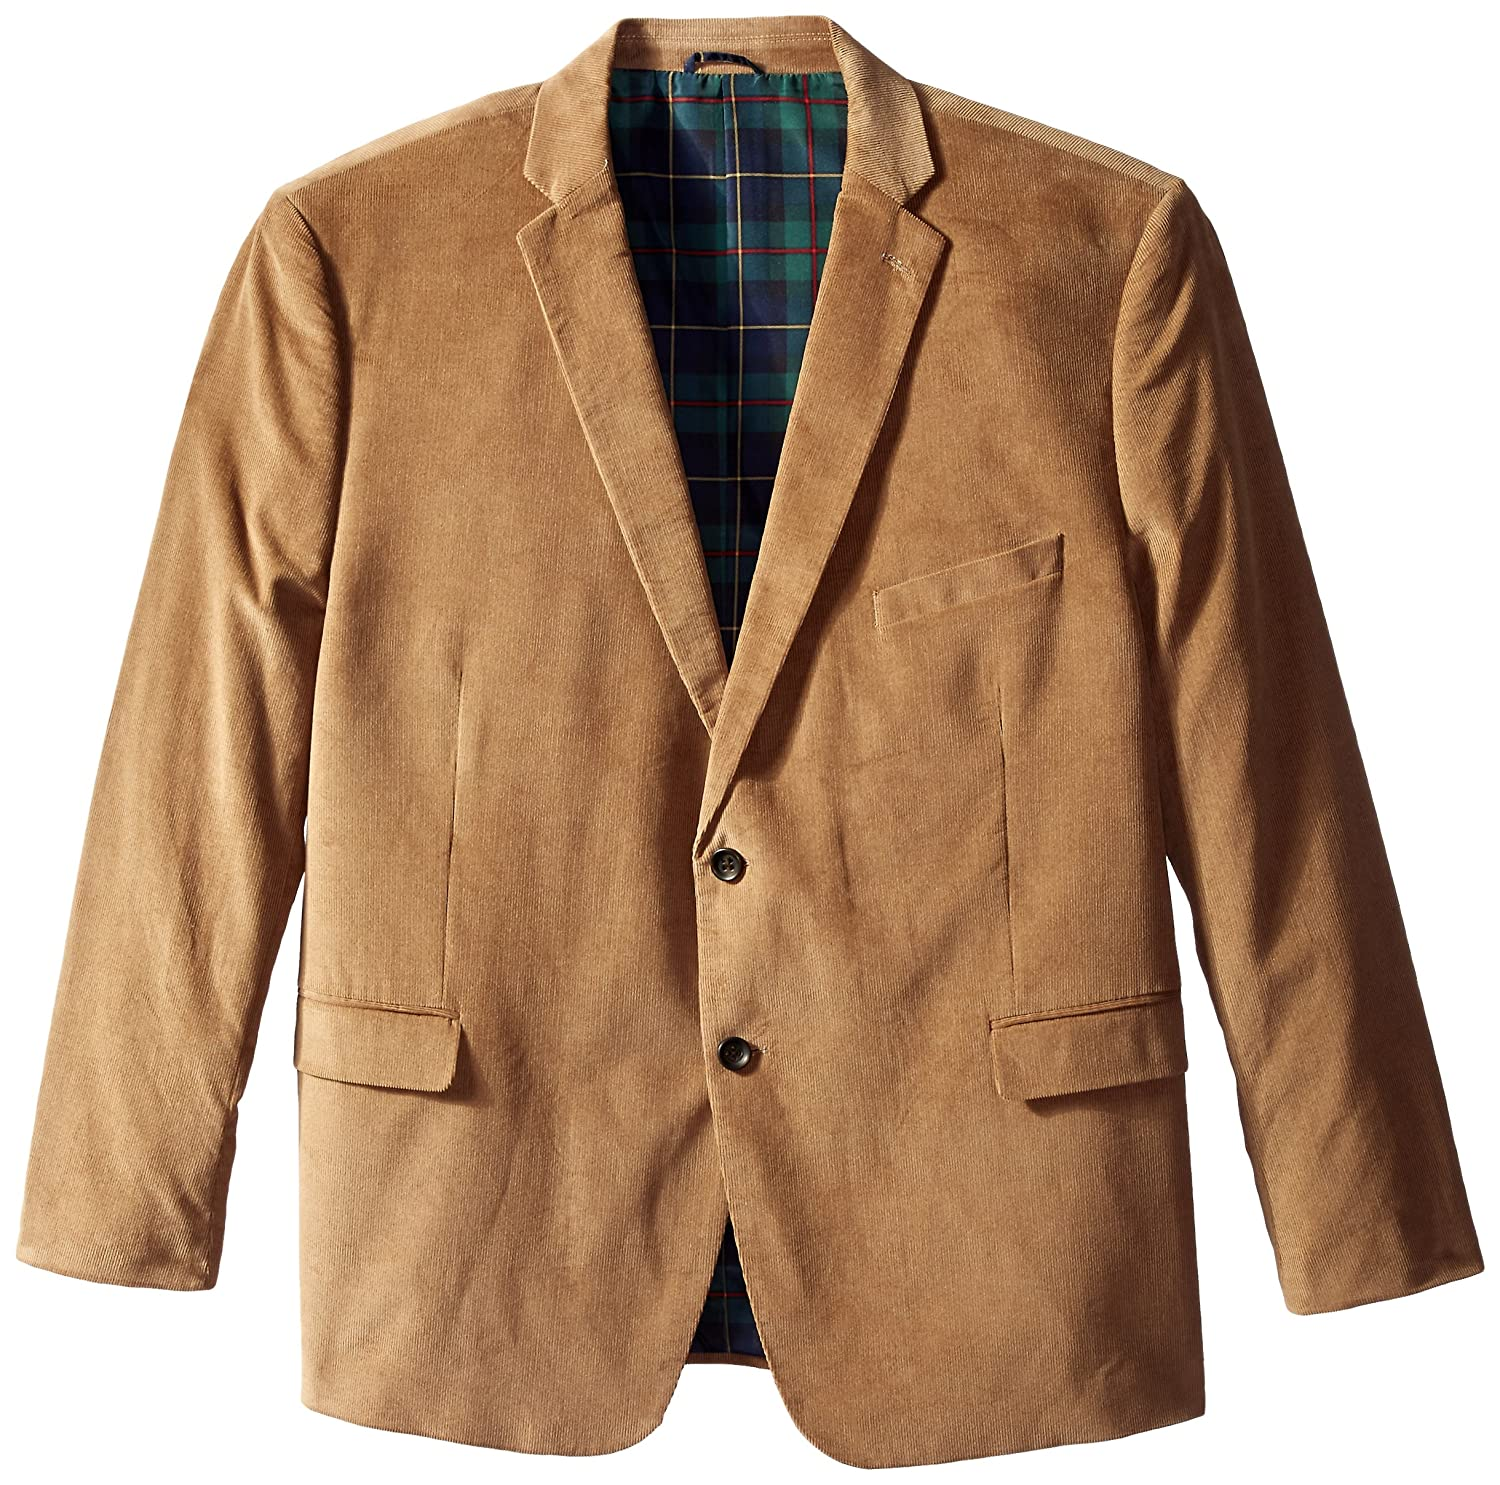 U.S. Polo Assn. Men's Big-Tall Cotton Corduroy Sport Coat RAM10-XL